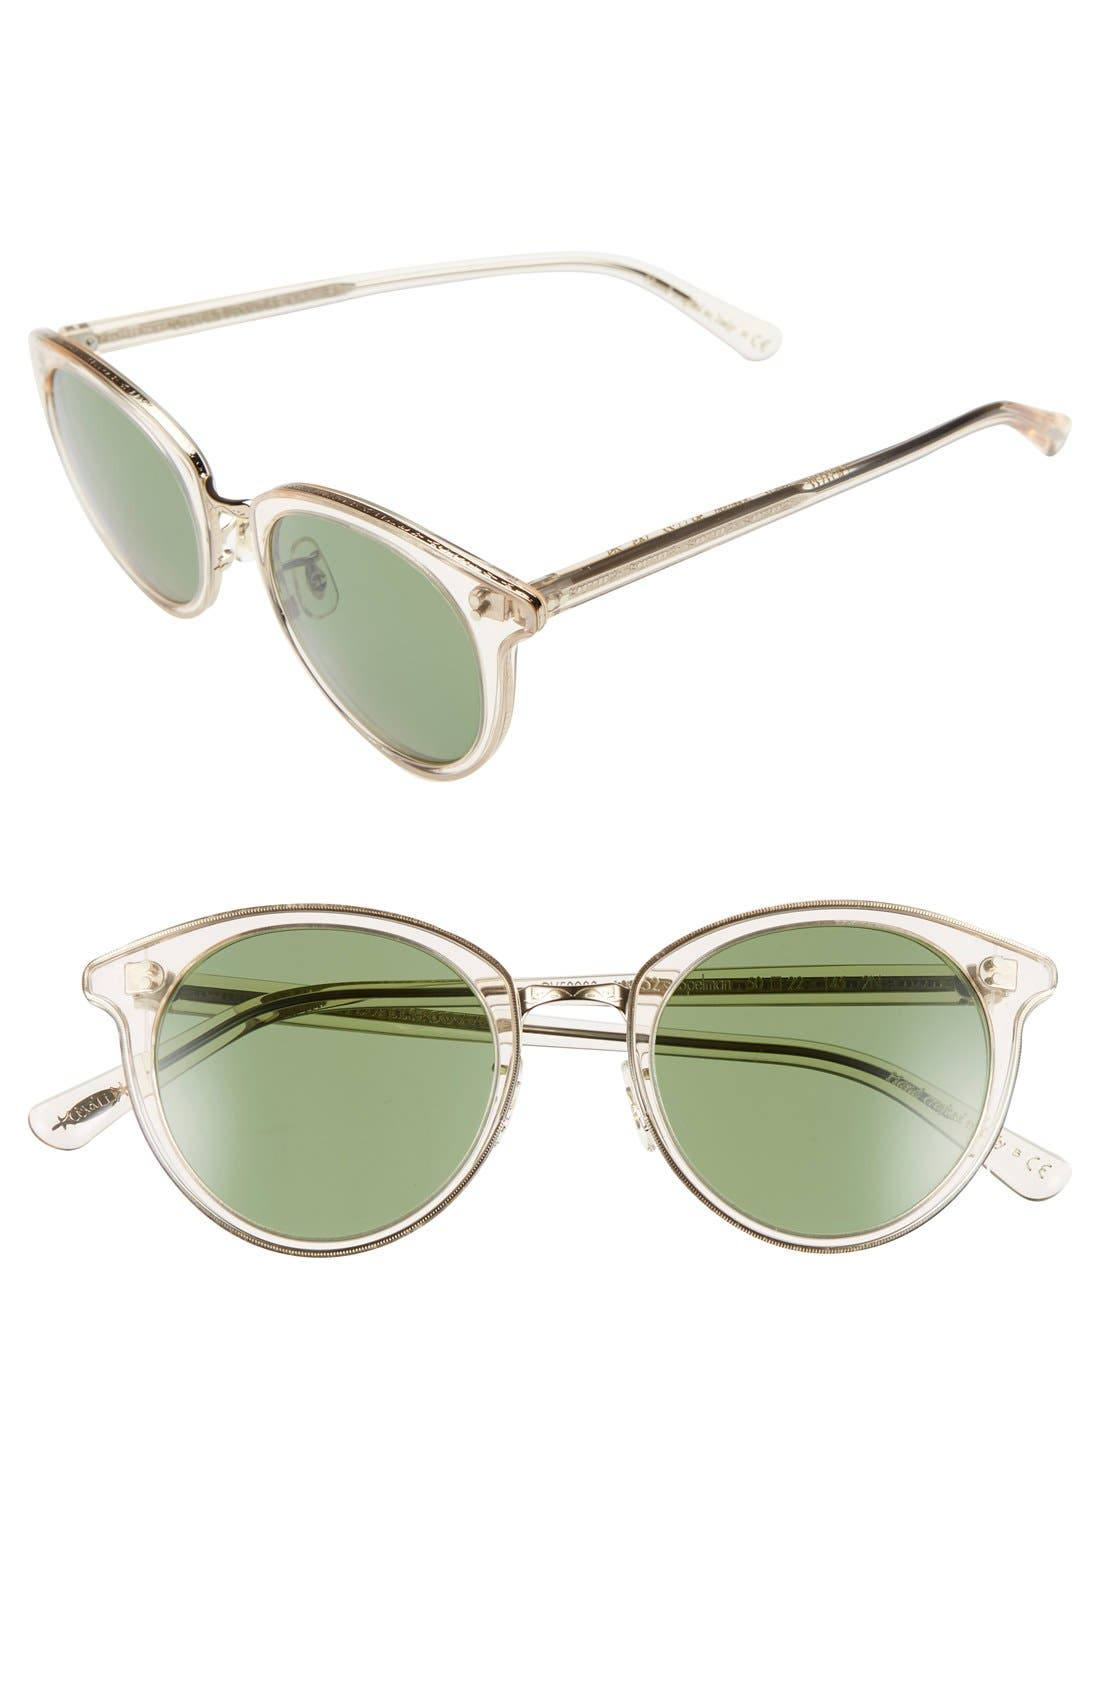 Alternate Image 1 Selected - Oliver Peoples 'Spelman' 50mm Retro Sunglasses